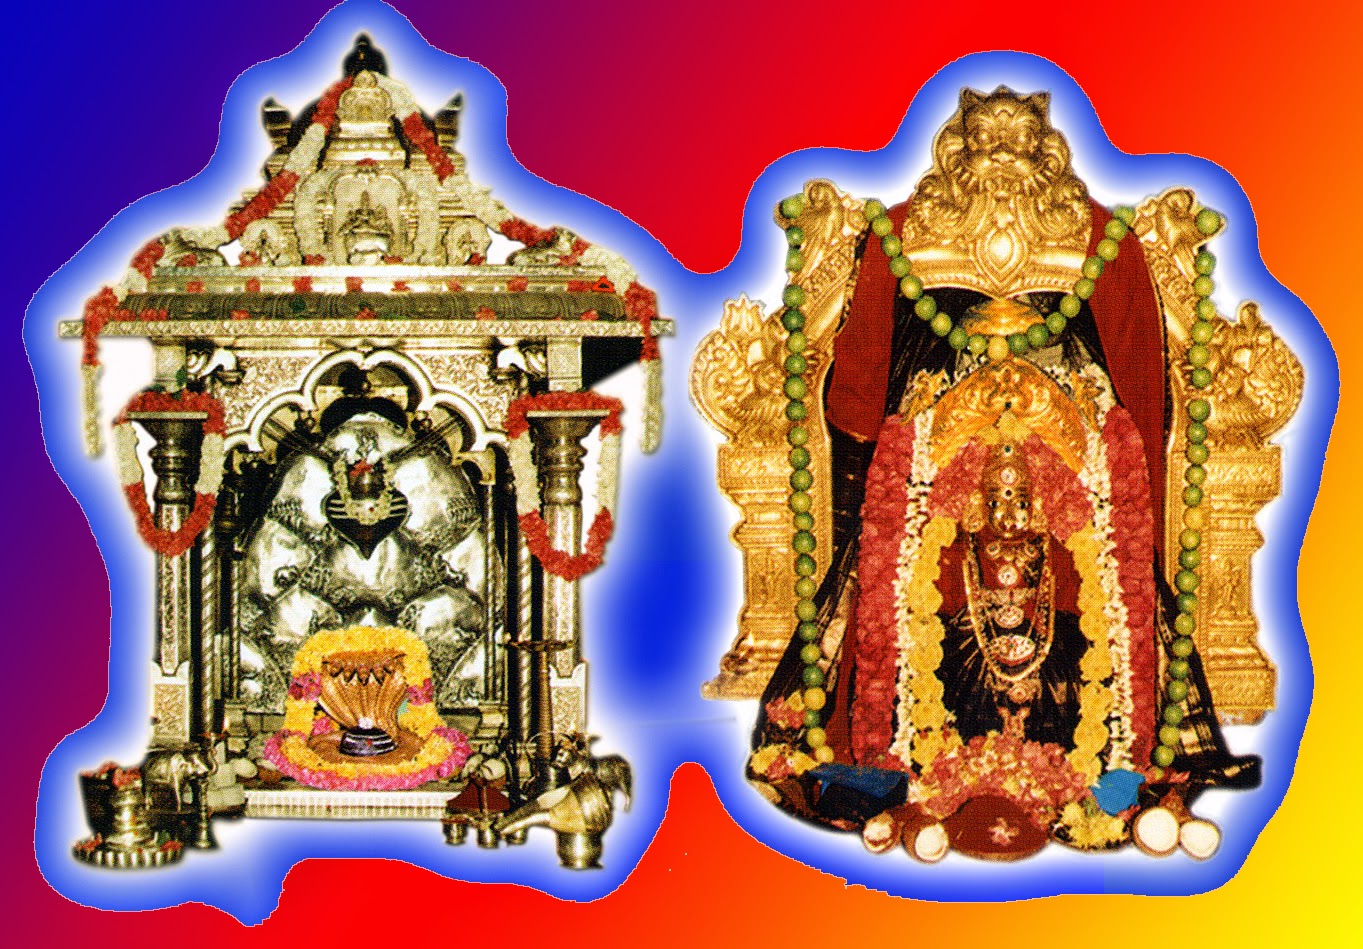 Mallikarjuna Swamy Temple Srisailam Top Wallapers Details